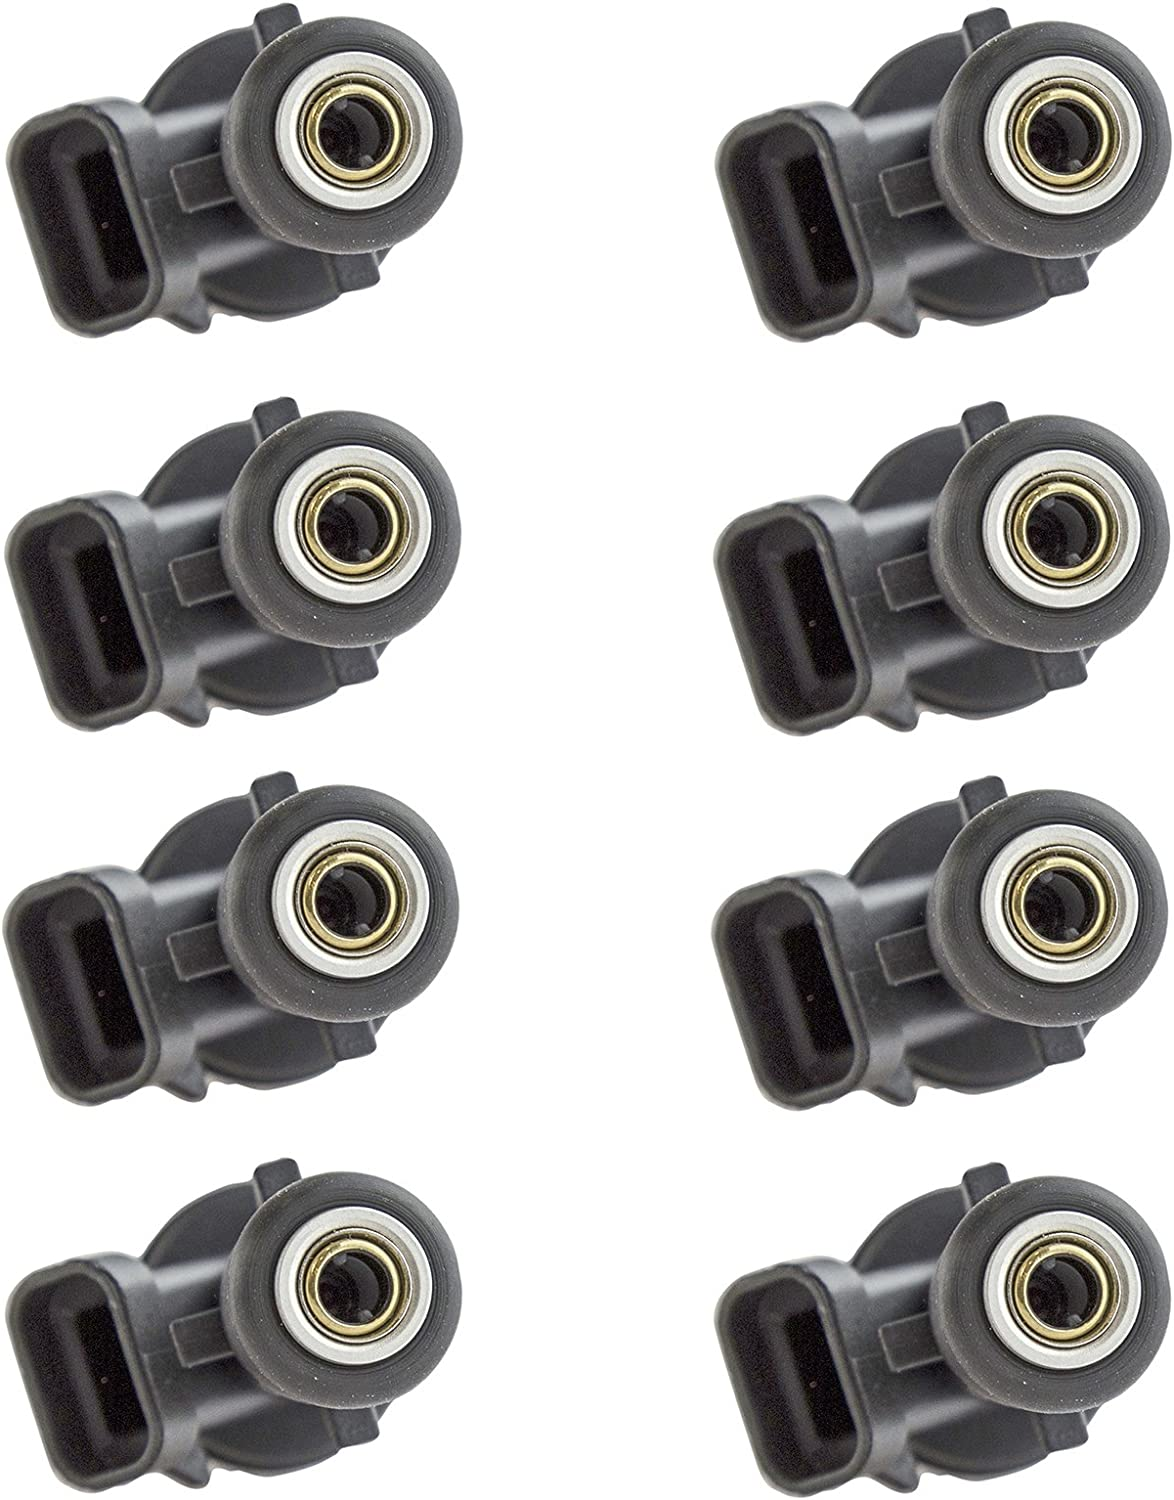 Brand MPI FI Fuel Injector Set of 8 Kit for Chevy GMC Pickup Truck V8